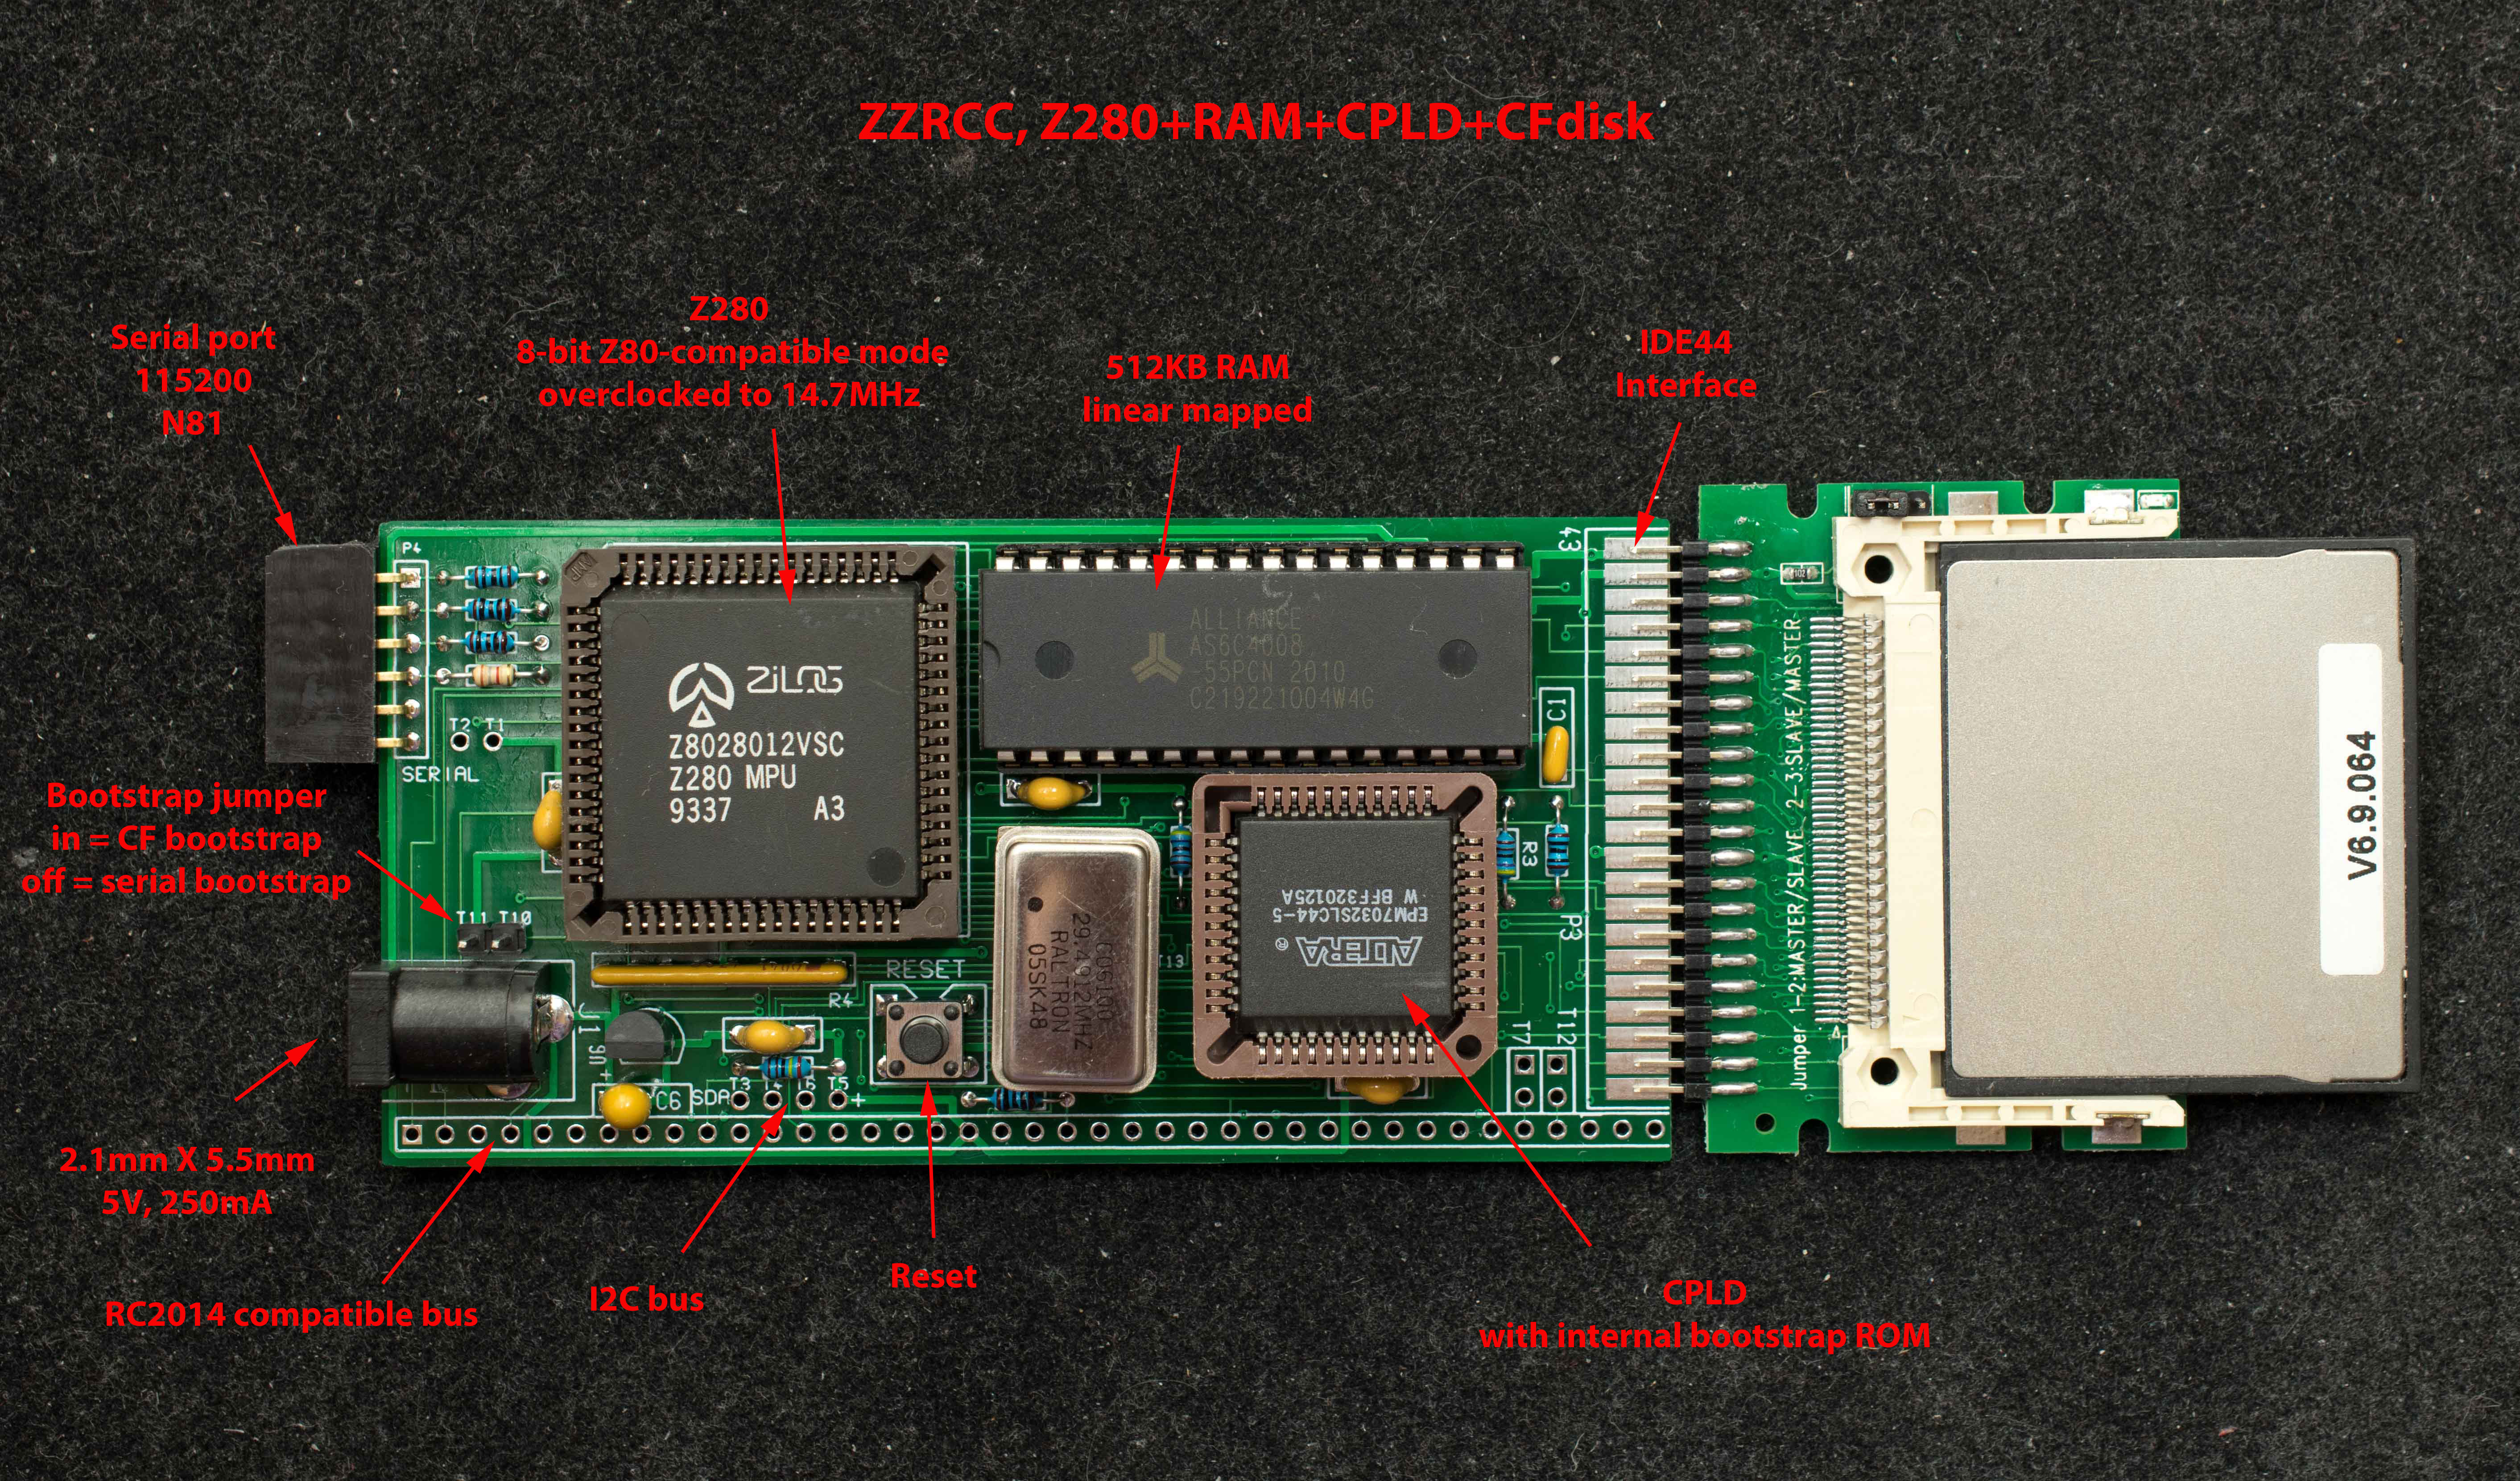 www.retrobrewcomputers.org_lib_plugins_ckgedit_fckeditor_userfiles_image_builderpages_plasmo_zzrcc_zzrcc_annotated.jpg